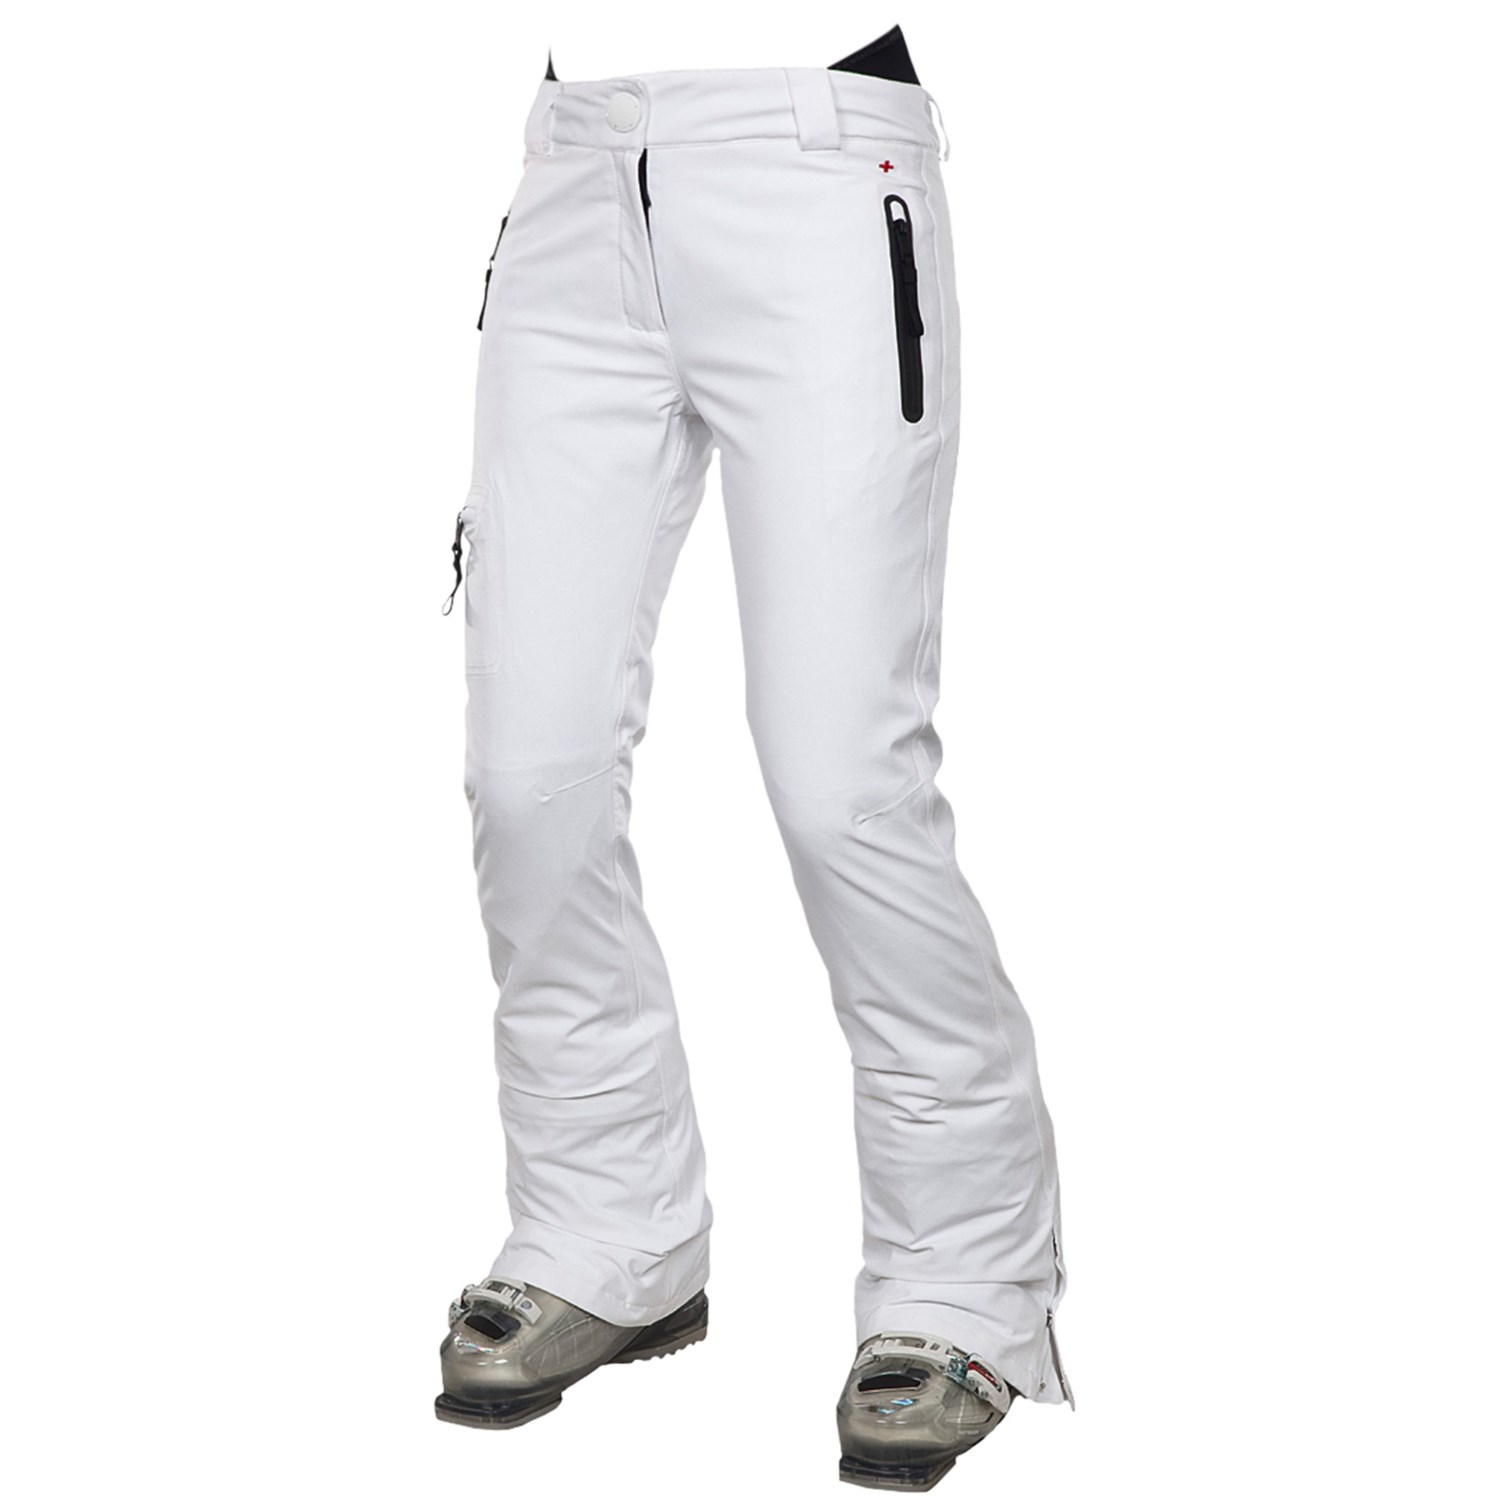 Fast, free shipping on all Ski Pants from Peter Glenn. Save up to 60% on our huge selection, and enjoy!